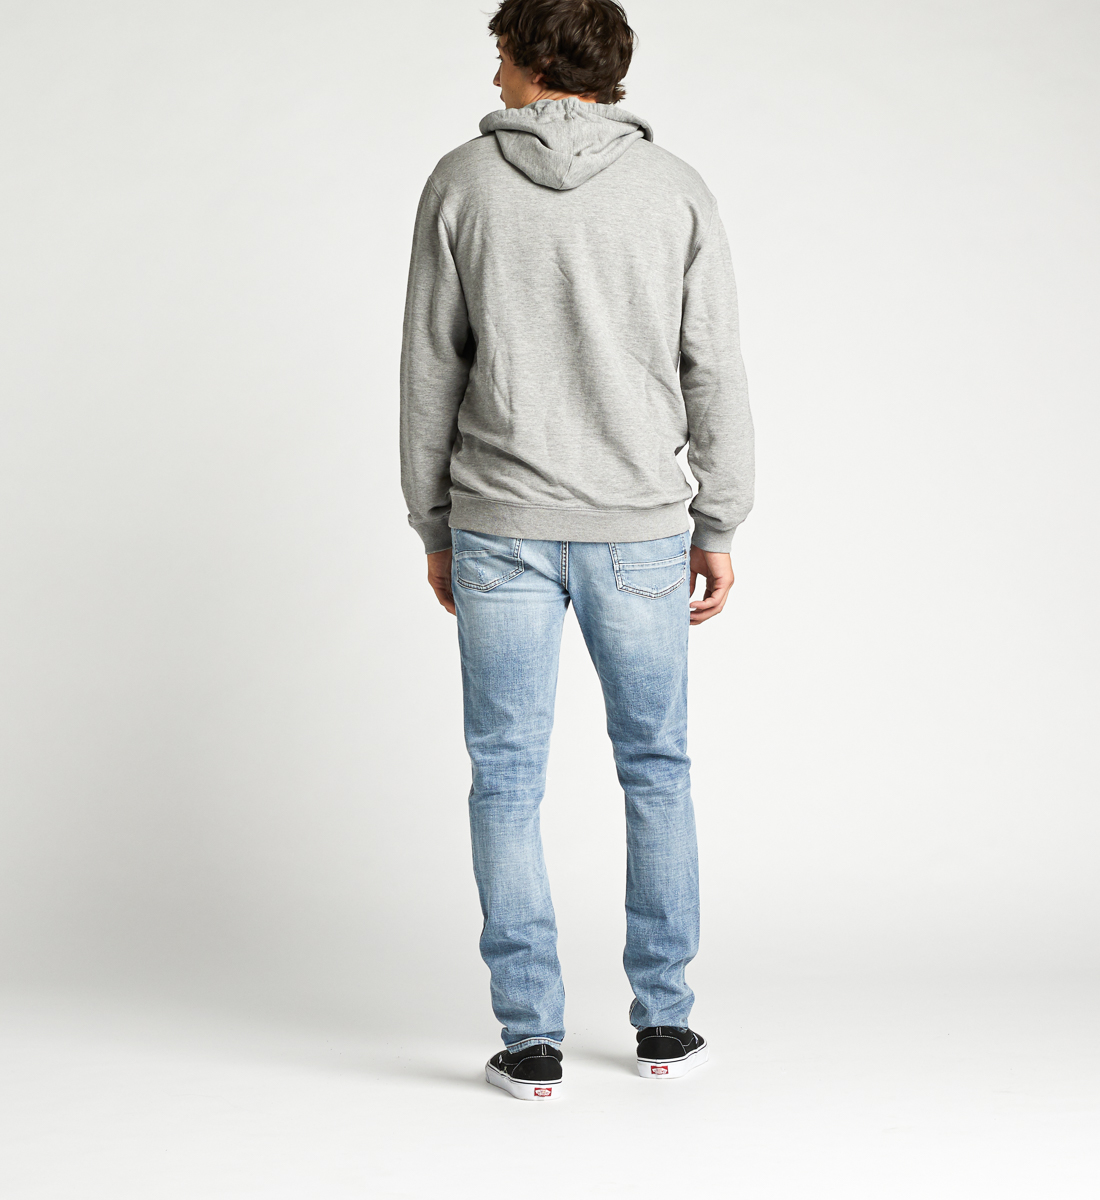 Allenby Unisex Logo Hoodie,Heather Grey Side